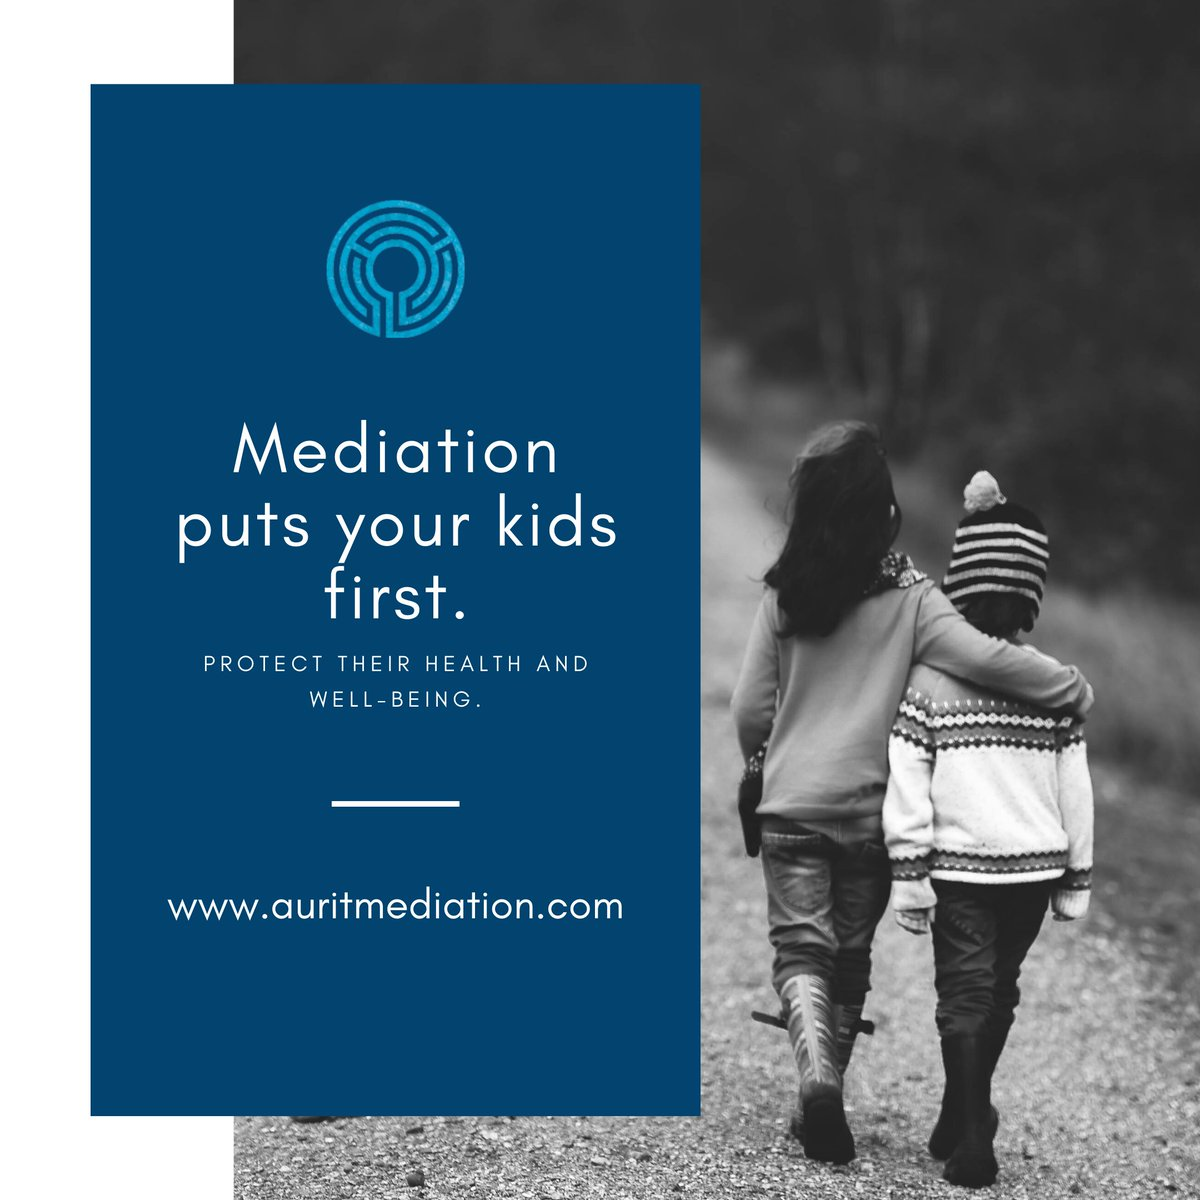 The Aurit Center For Divorce Mediation keeps your children at heart.  #theauritcenter #healthydivorce #mediation #divorcemediation #online #onlinemediation #divorce #parenting #coparenting #family #kids #children #heart #conflictresolution #healthy #best #interests #focus #needs https://t.co/oqERbTFBlv